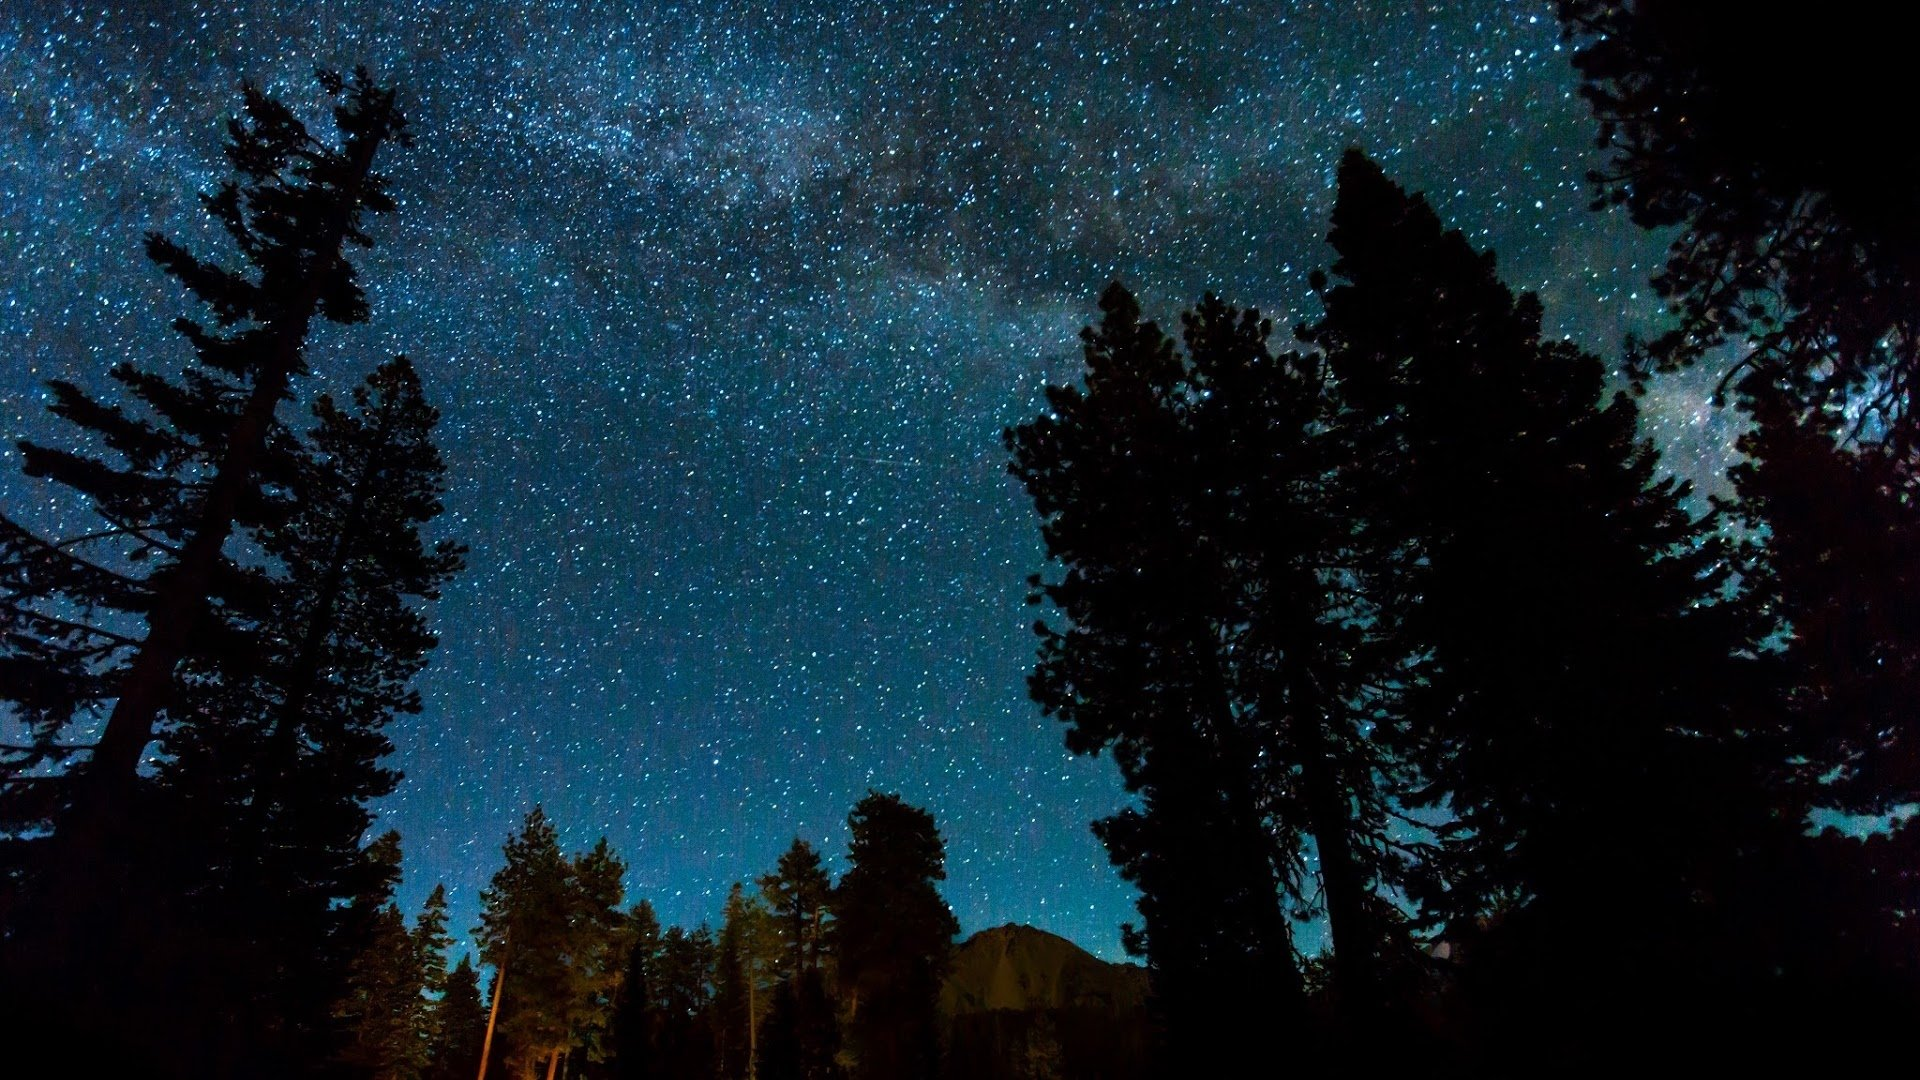 Starry Sky Over Night Forest Hd Wallpaper Background Image